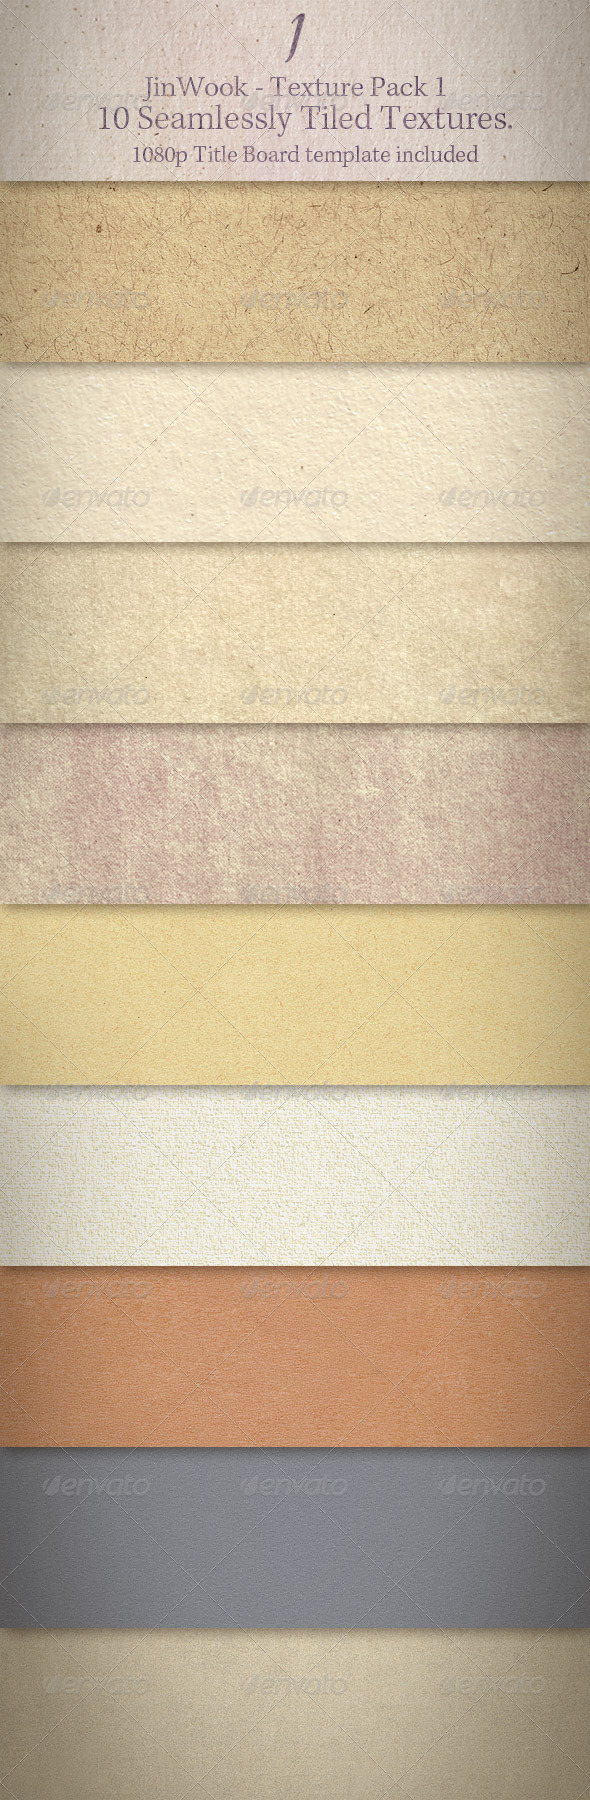 JinWook Texture Pack 1 (Seamless) - Paper Textures